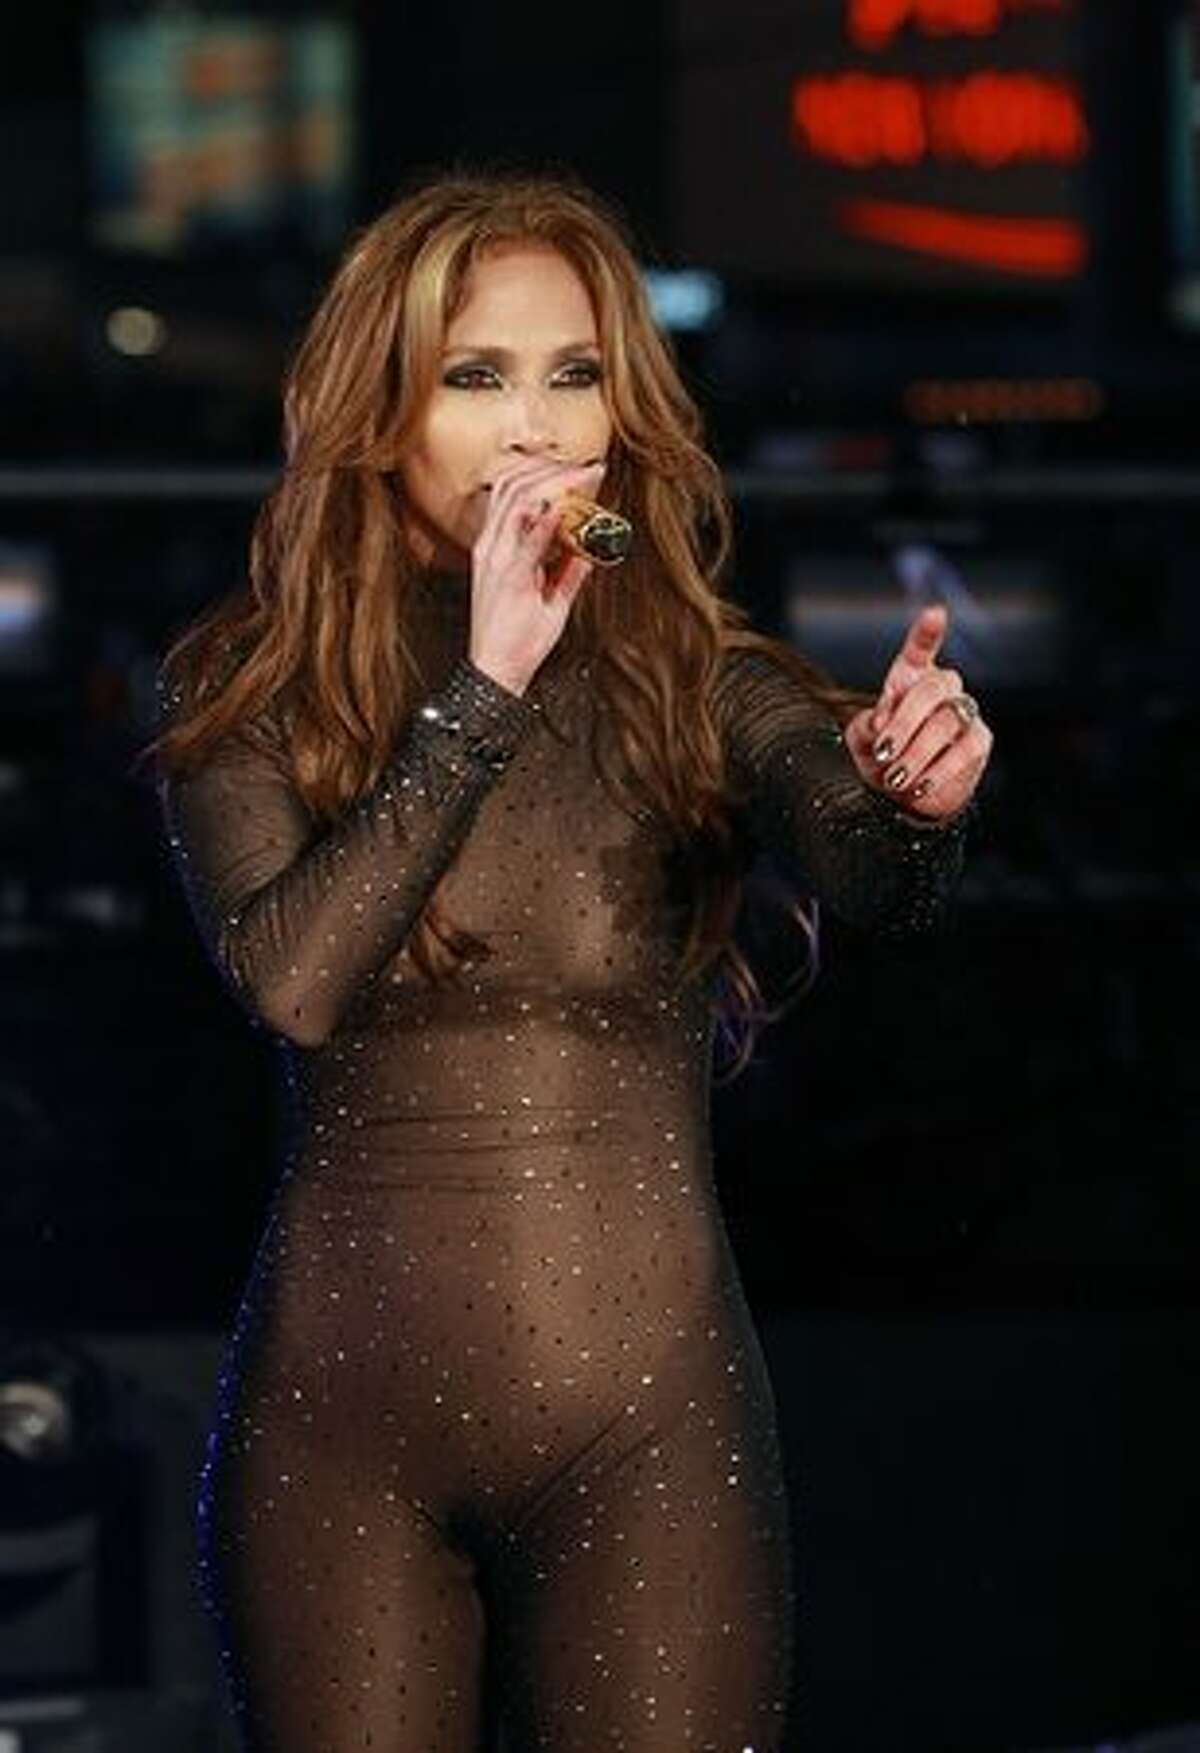 Actress and singer Jennifer Lopez performs in Times Square for News Year's Eve in New York City.